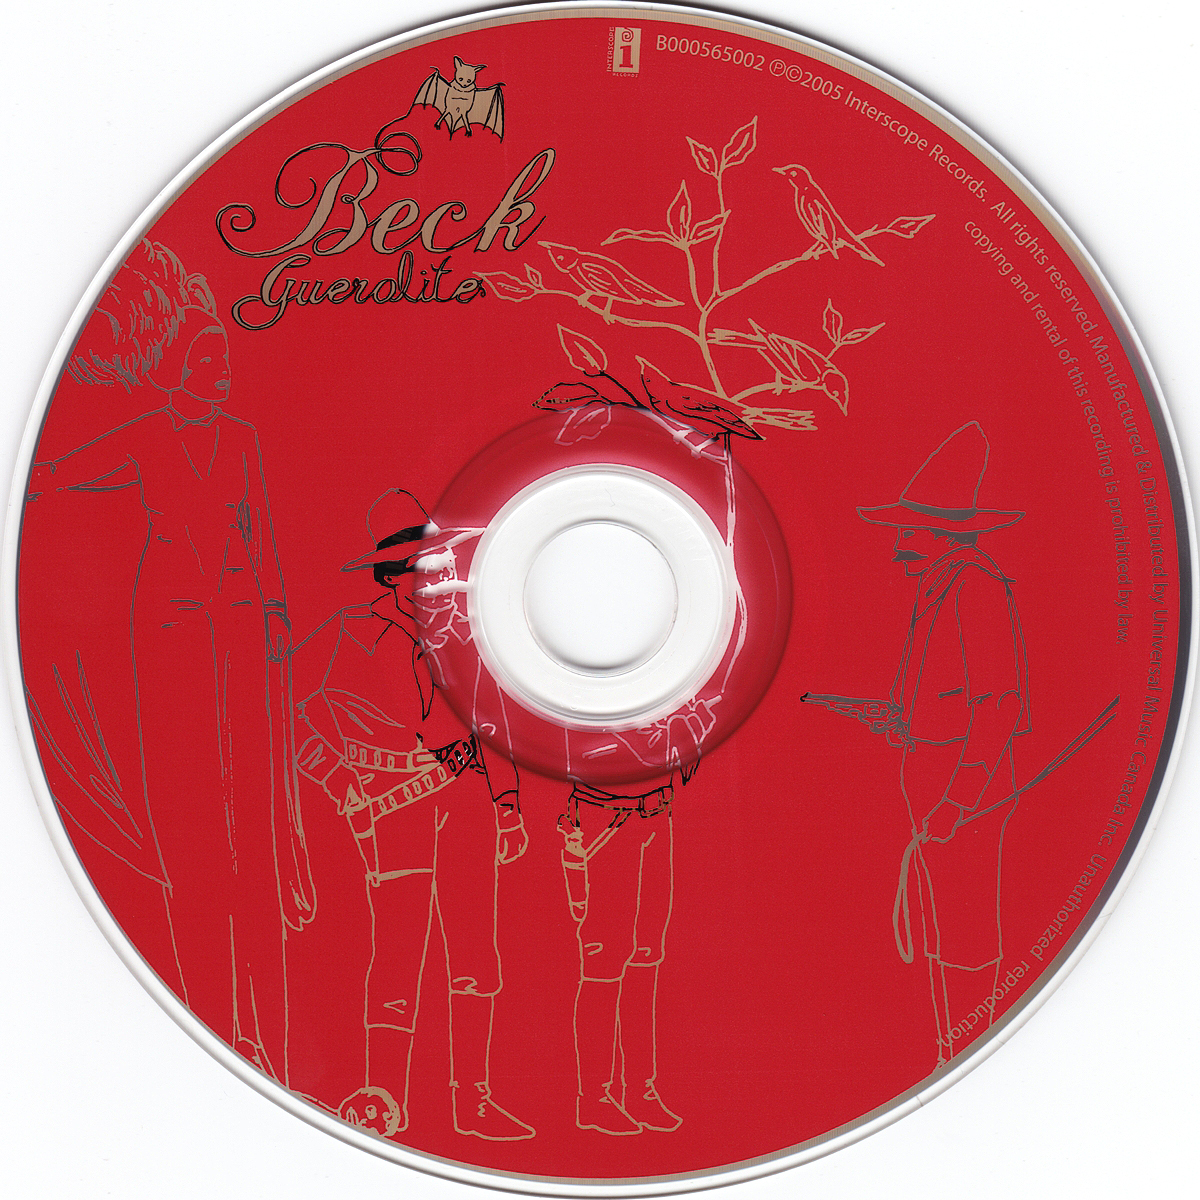 Copertina cd Beck - Guerolito - CD, cover cd Beck ...